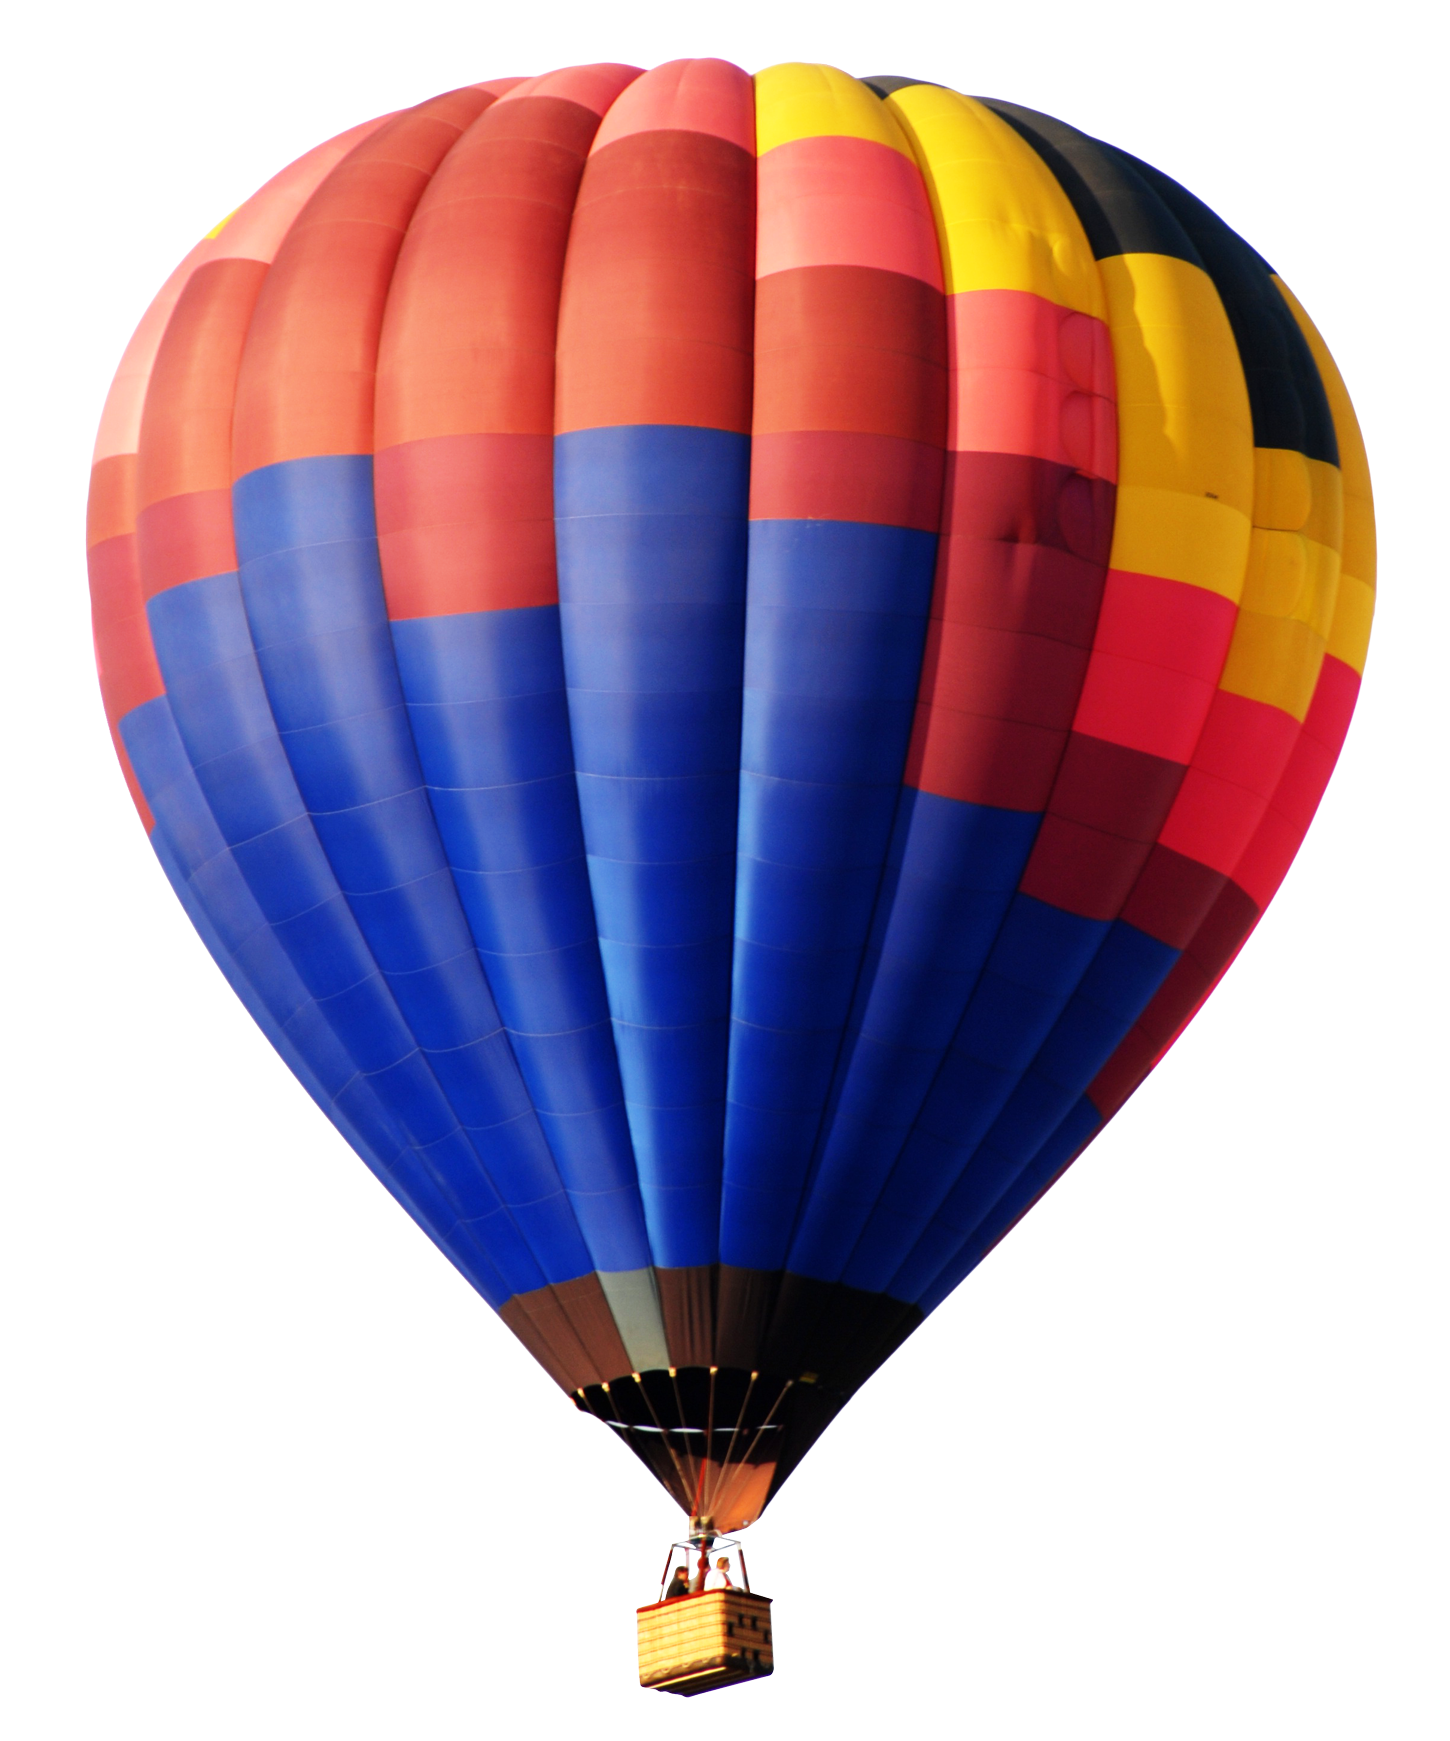 Colorful hot air balloon png. Transparent image best